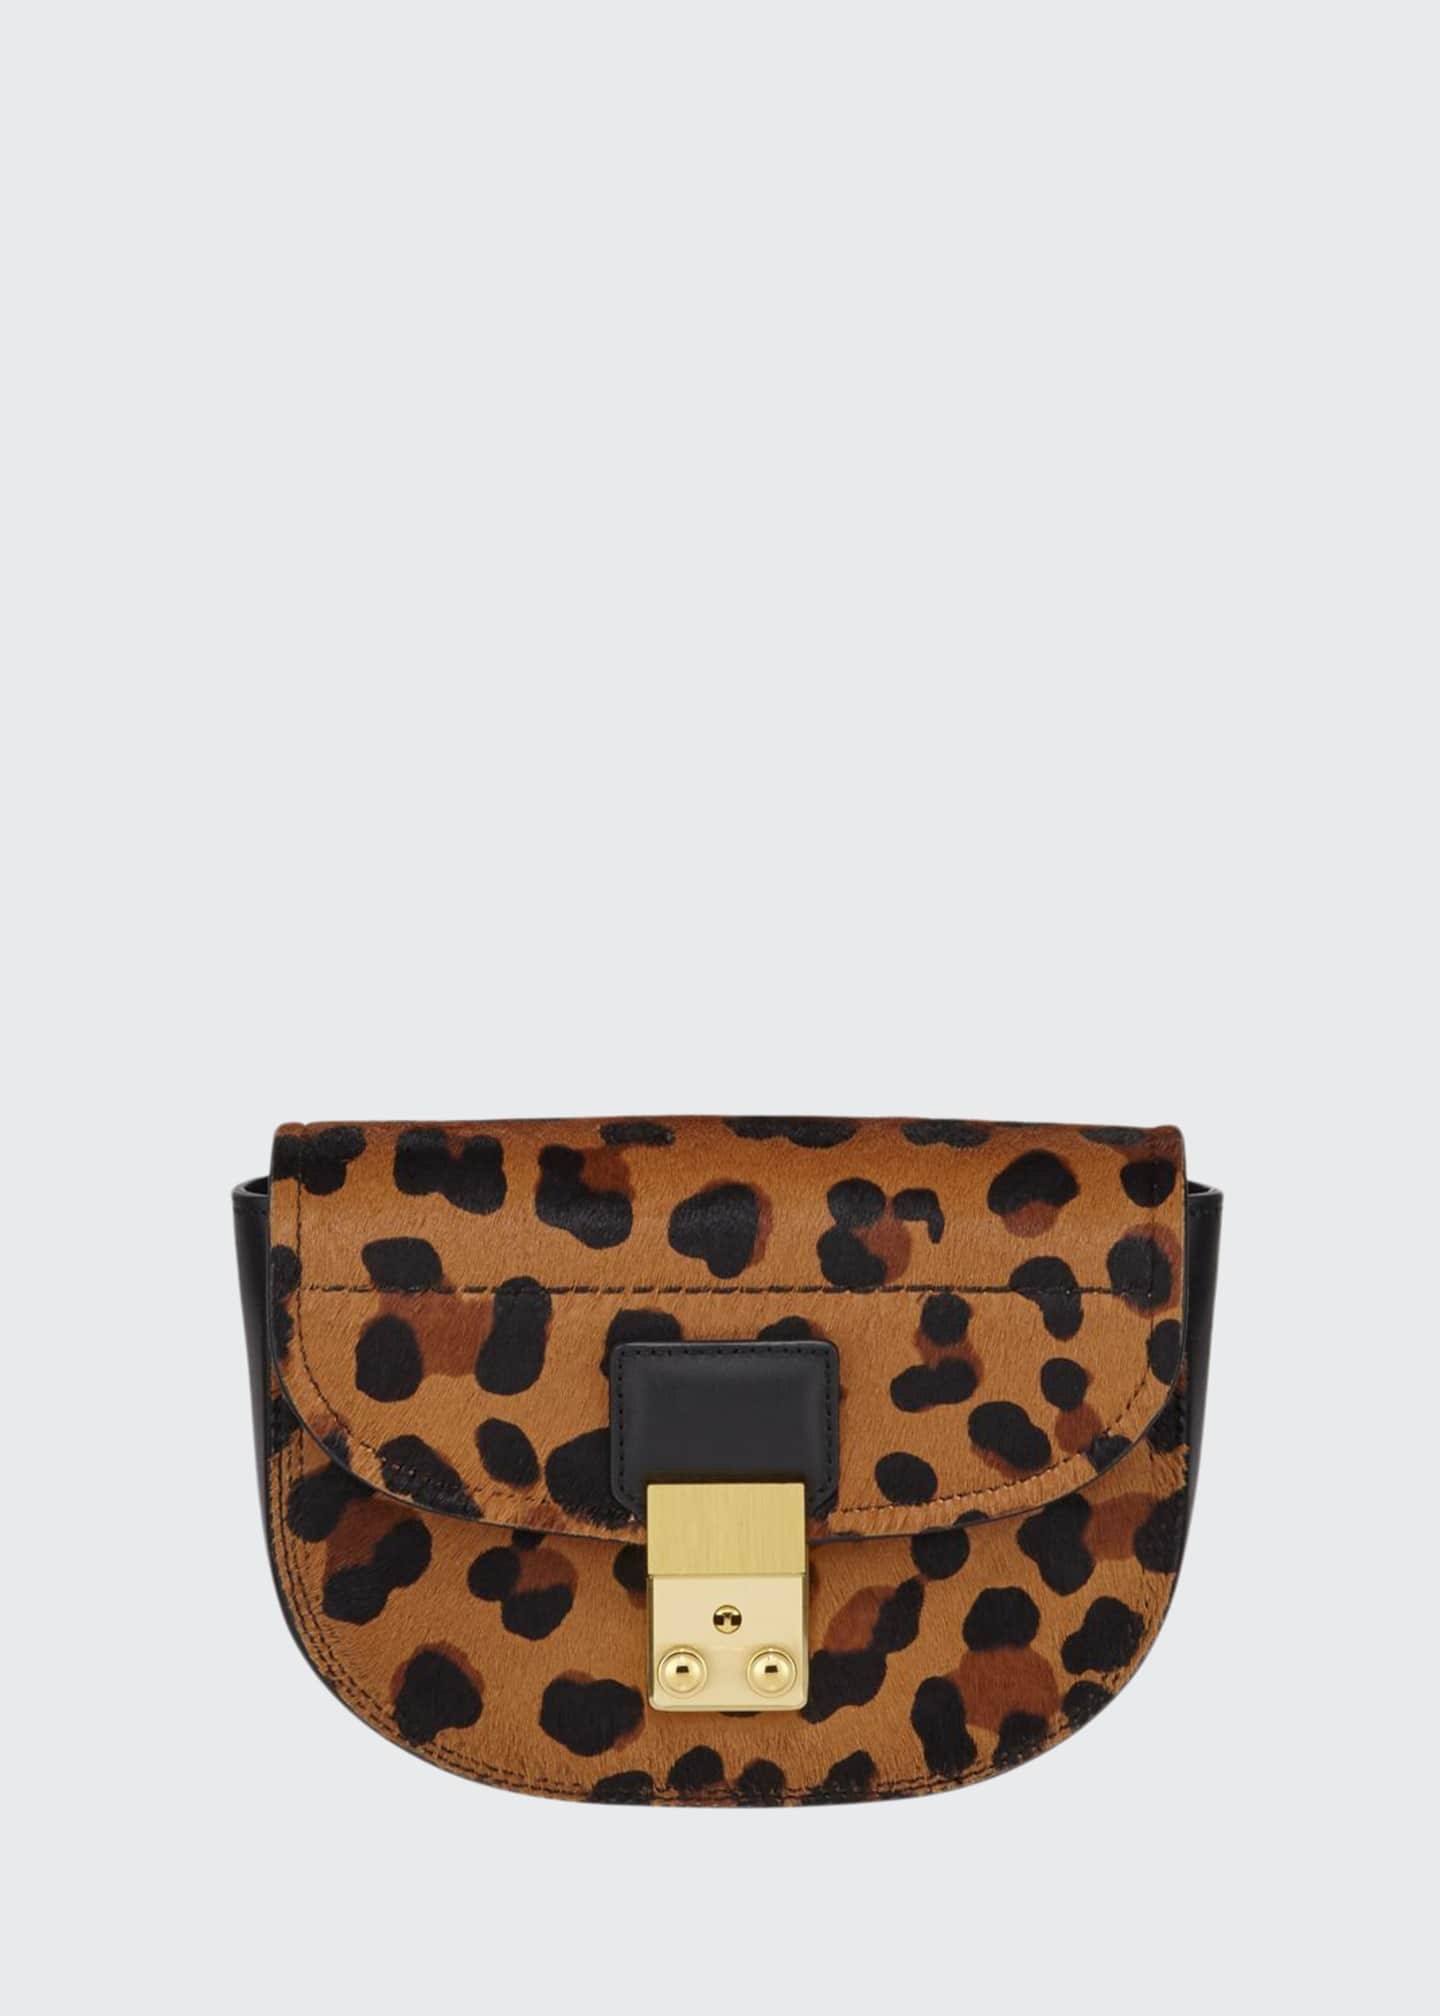 3.1 Phillip Lim Pashli Mini Saddle Leopard Belt